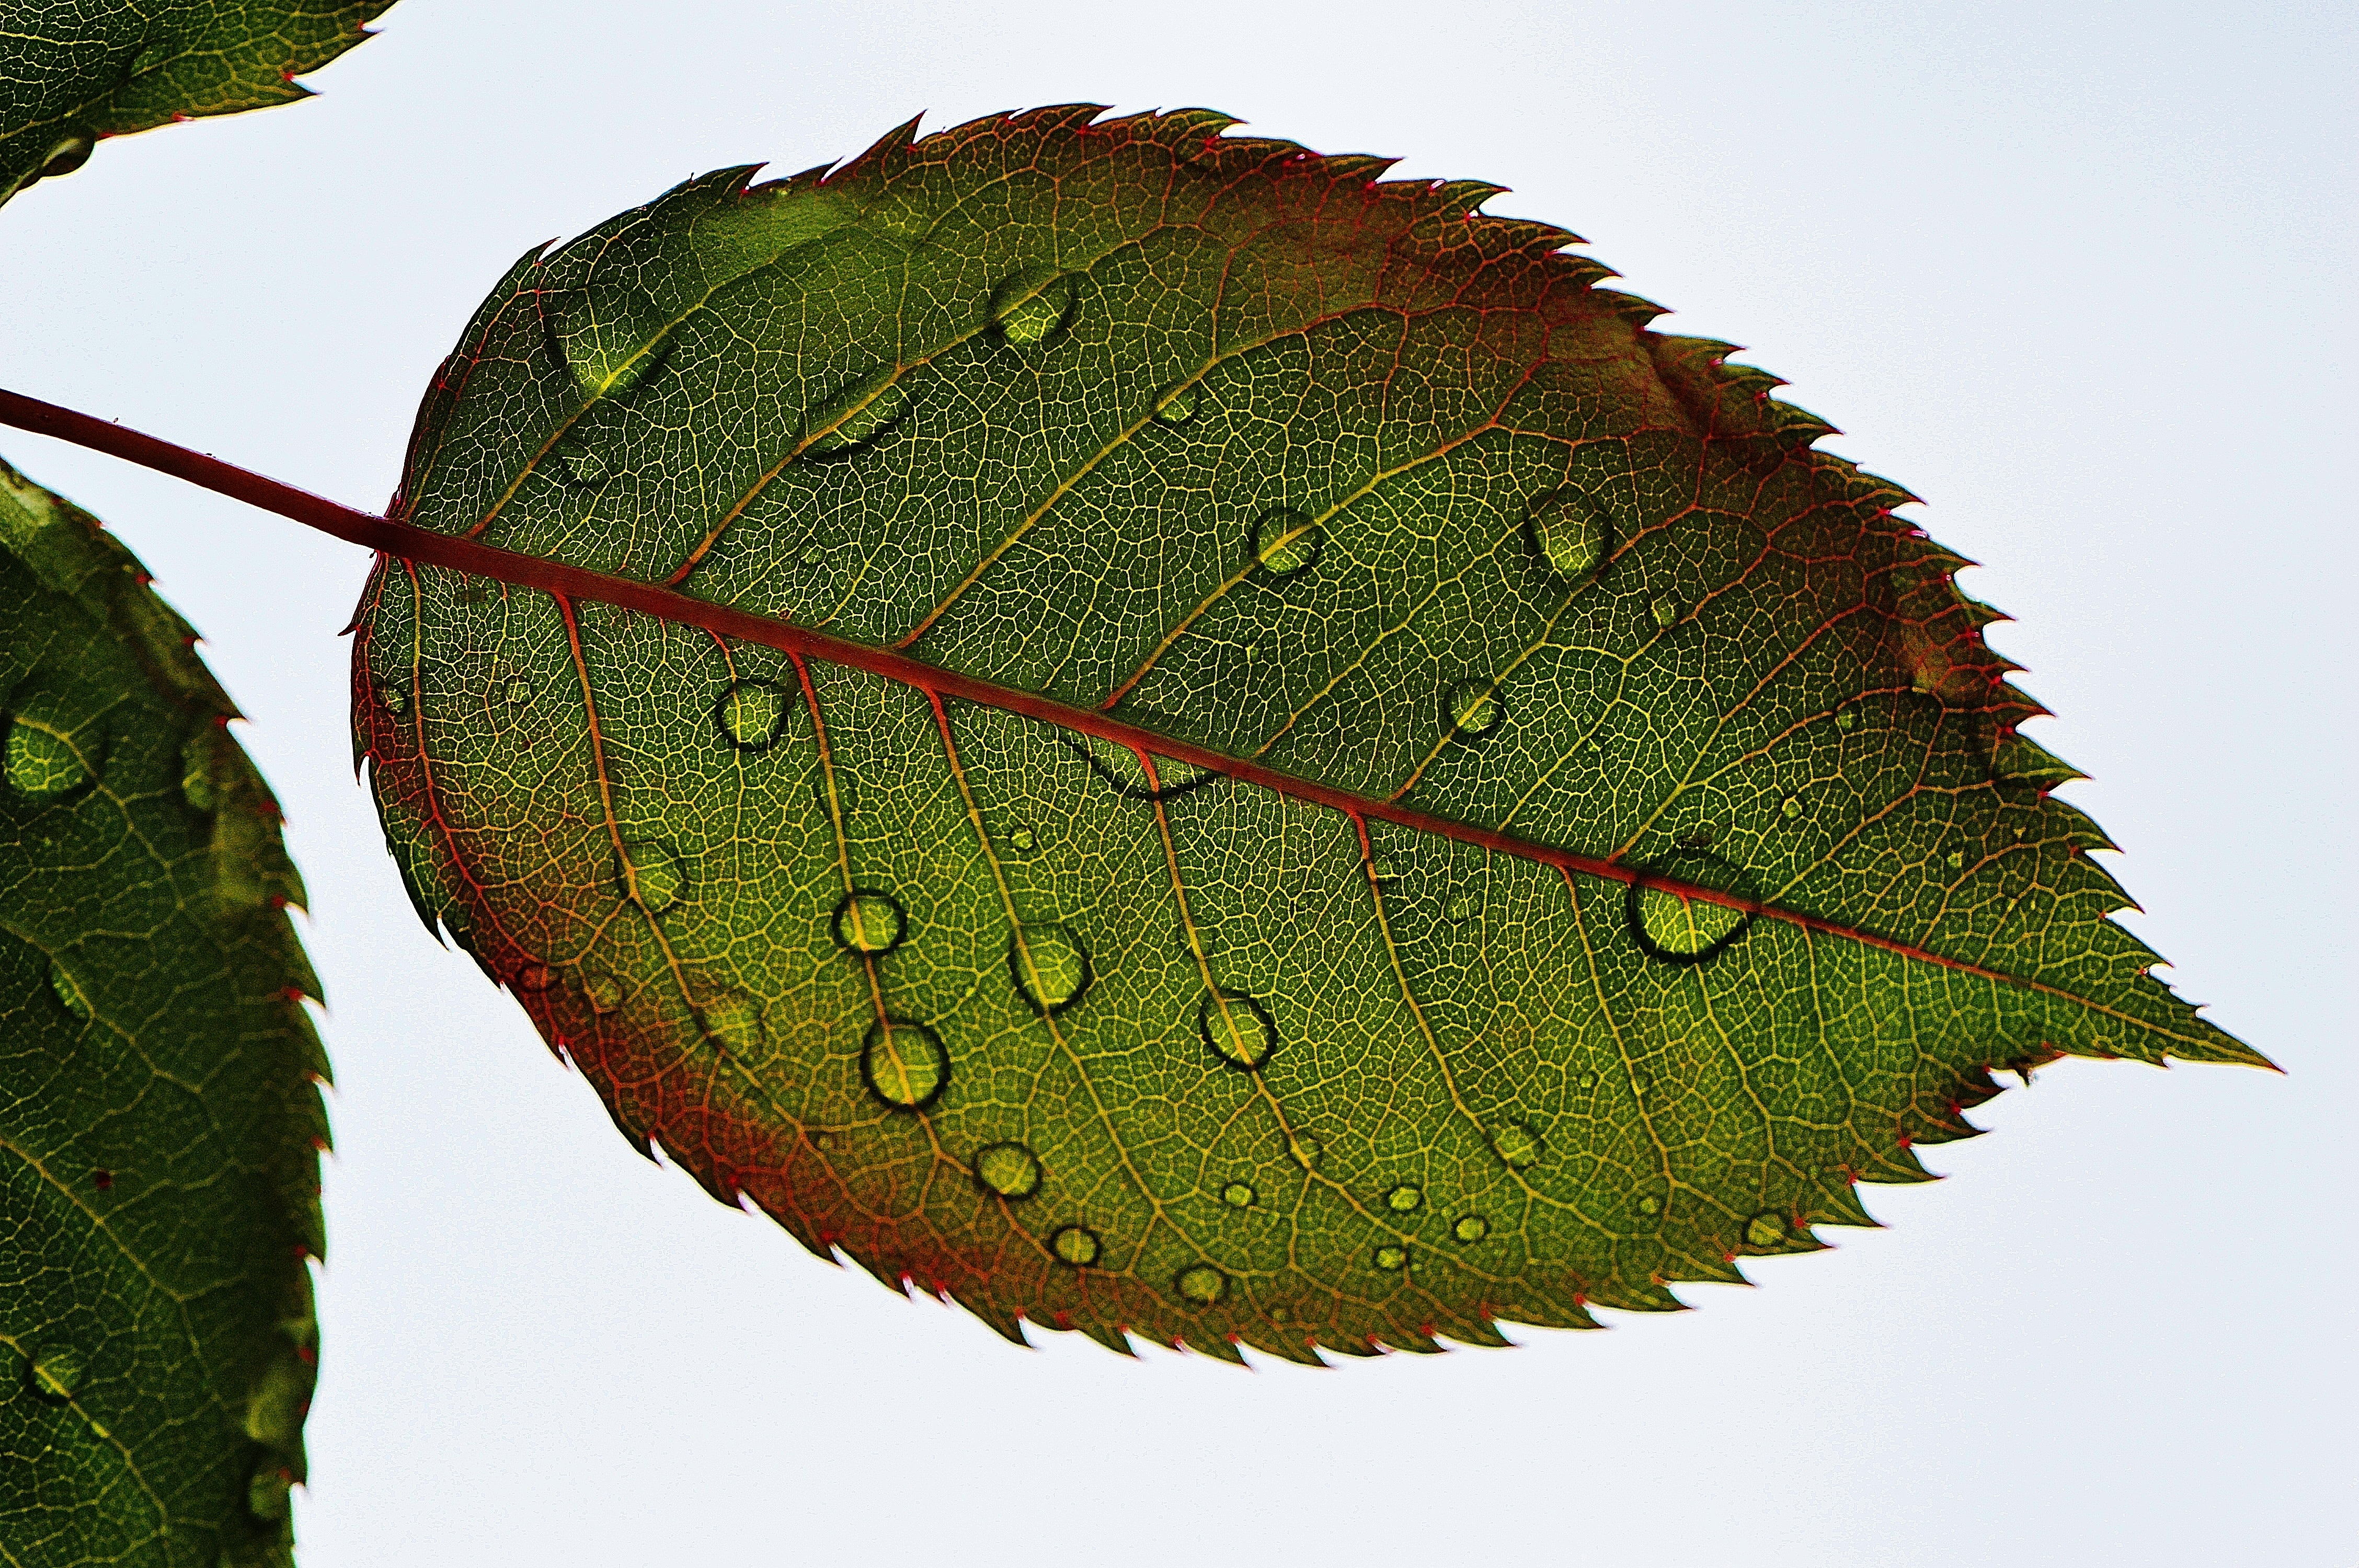 Leaf with dew drops leaves with dew, leaves, dew, nature, water, water drops, life, green, plants